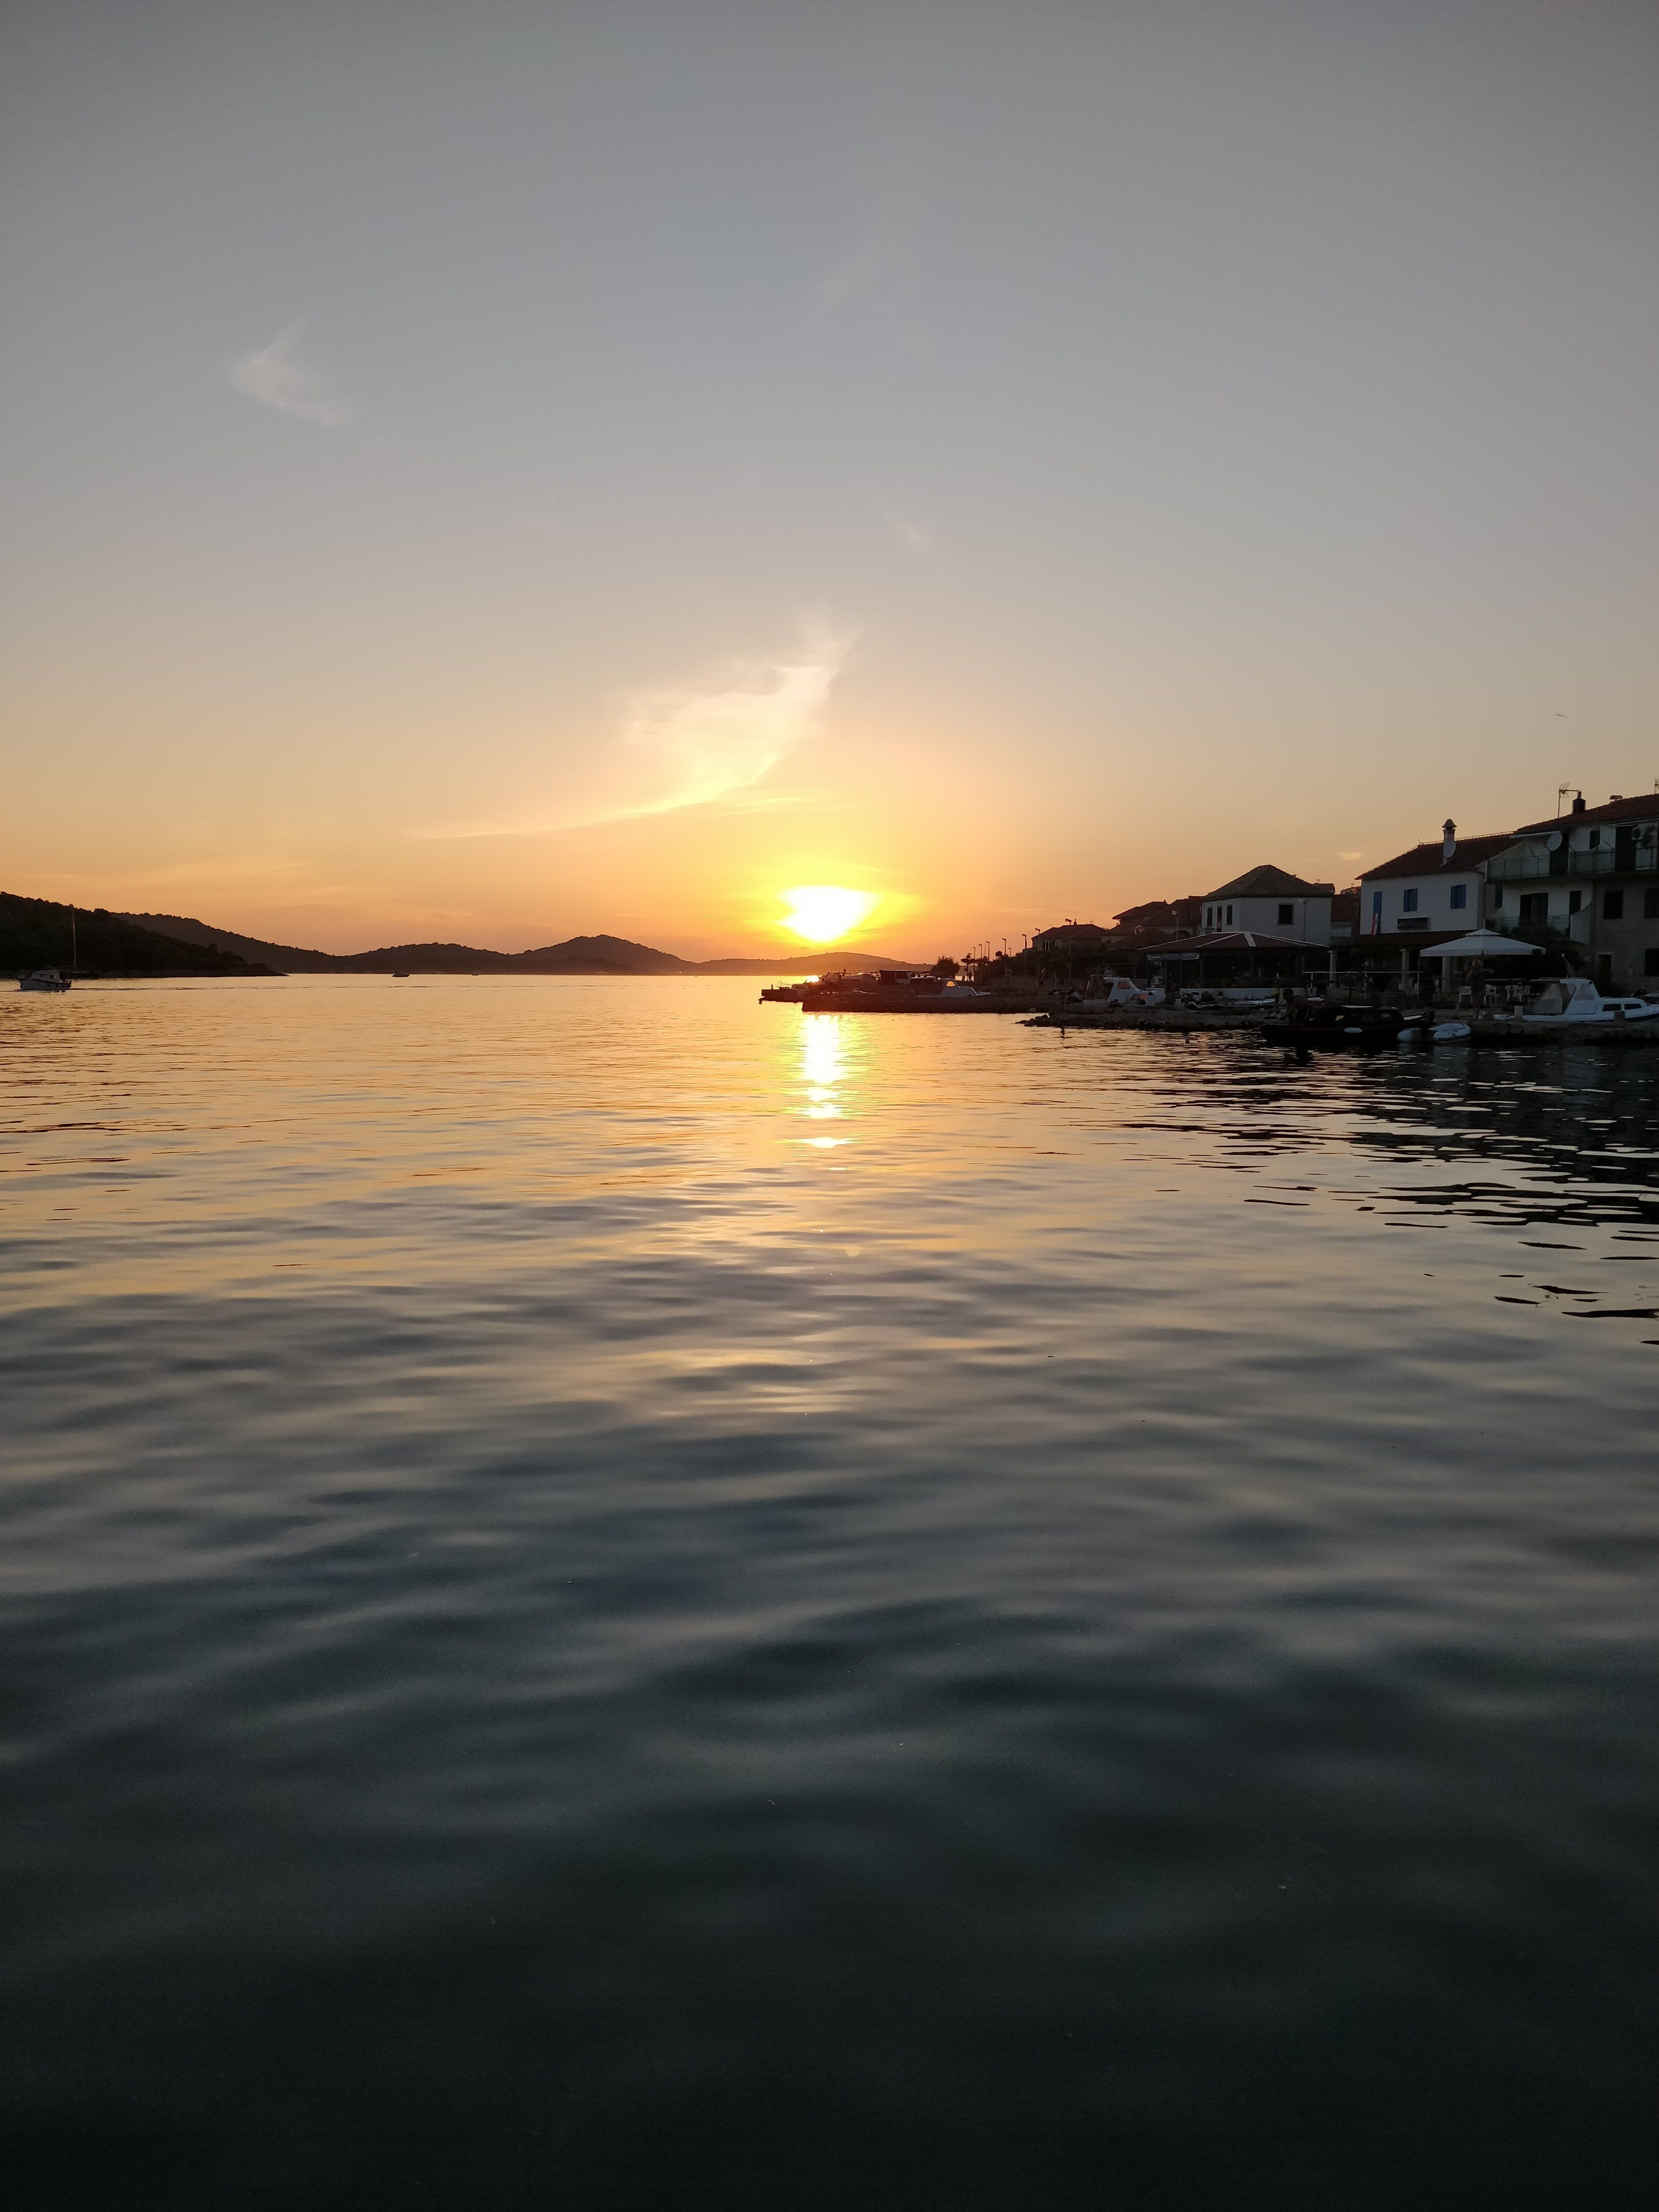 A snap of the sunset taken from the island of Kaprije, Croatia, and later posted to